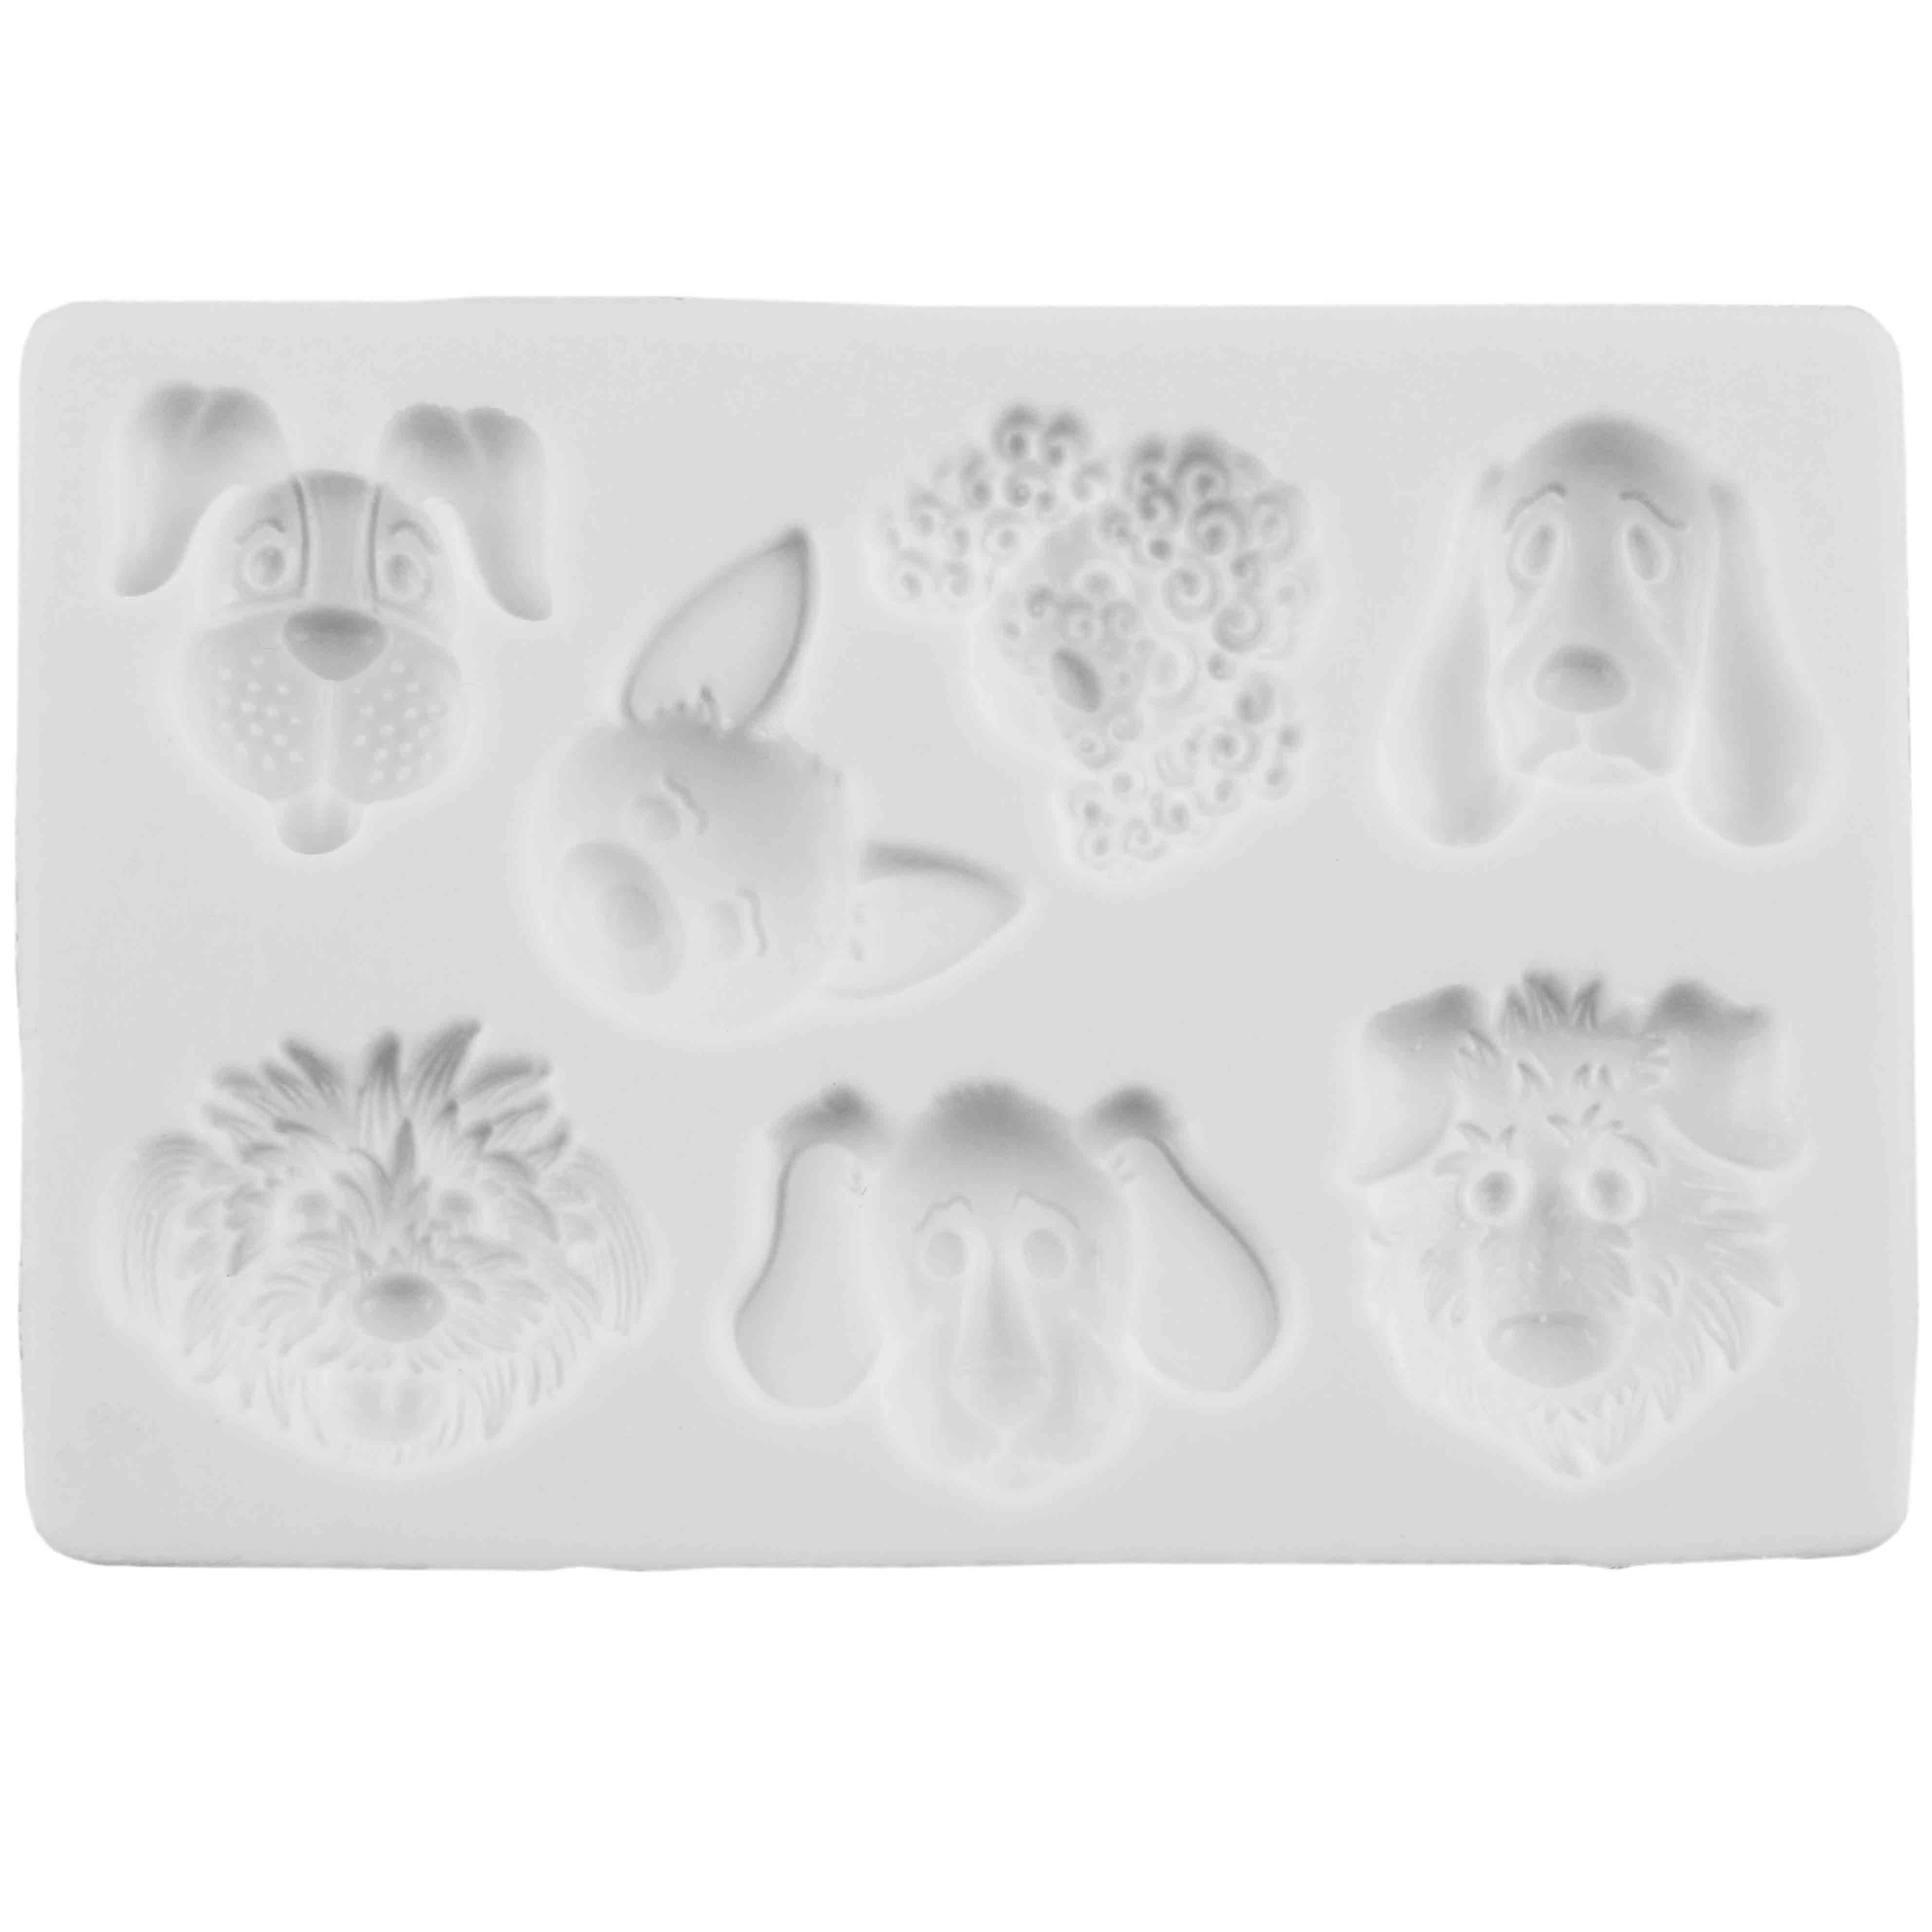 Dog Heads Silicone Mold